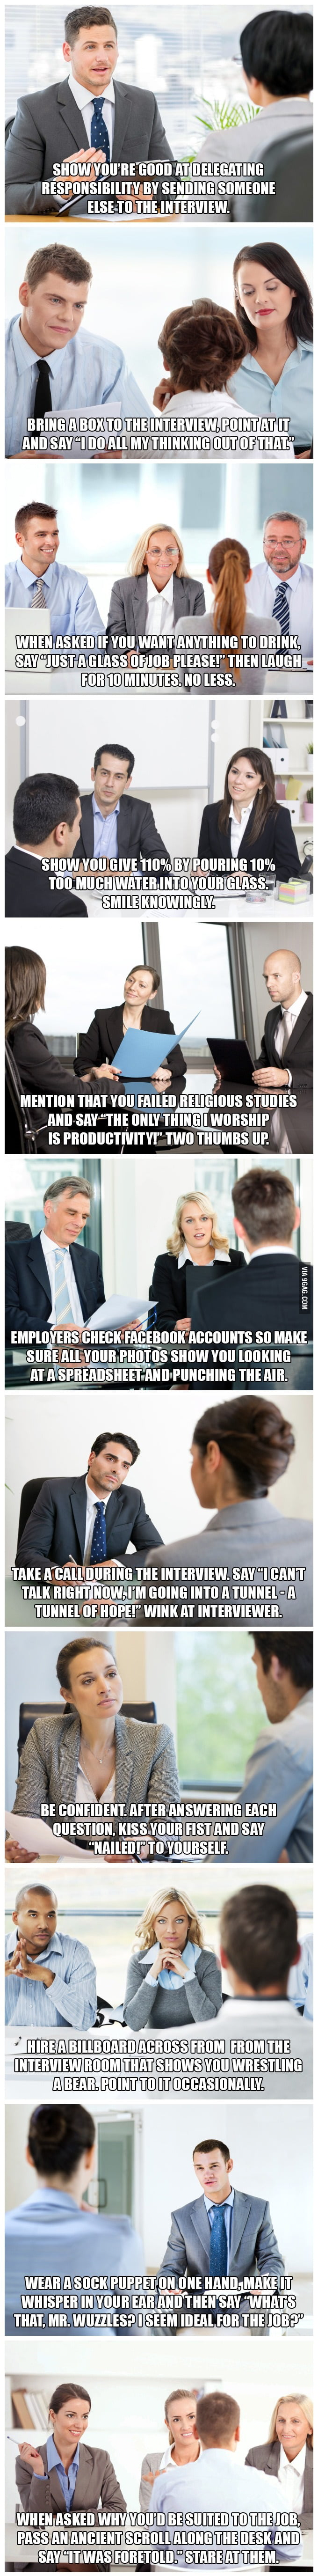 12 tips to help you succeed at job interviews 9gag 12 tips to help you succeed at job interviews